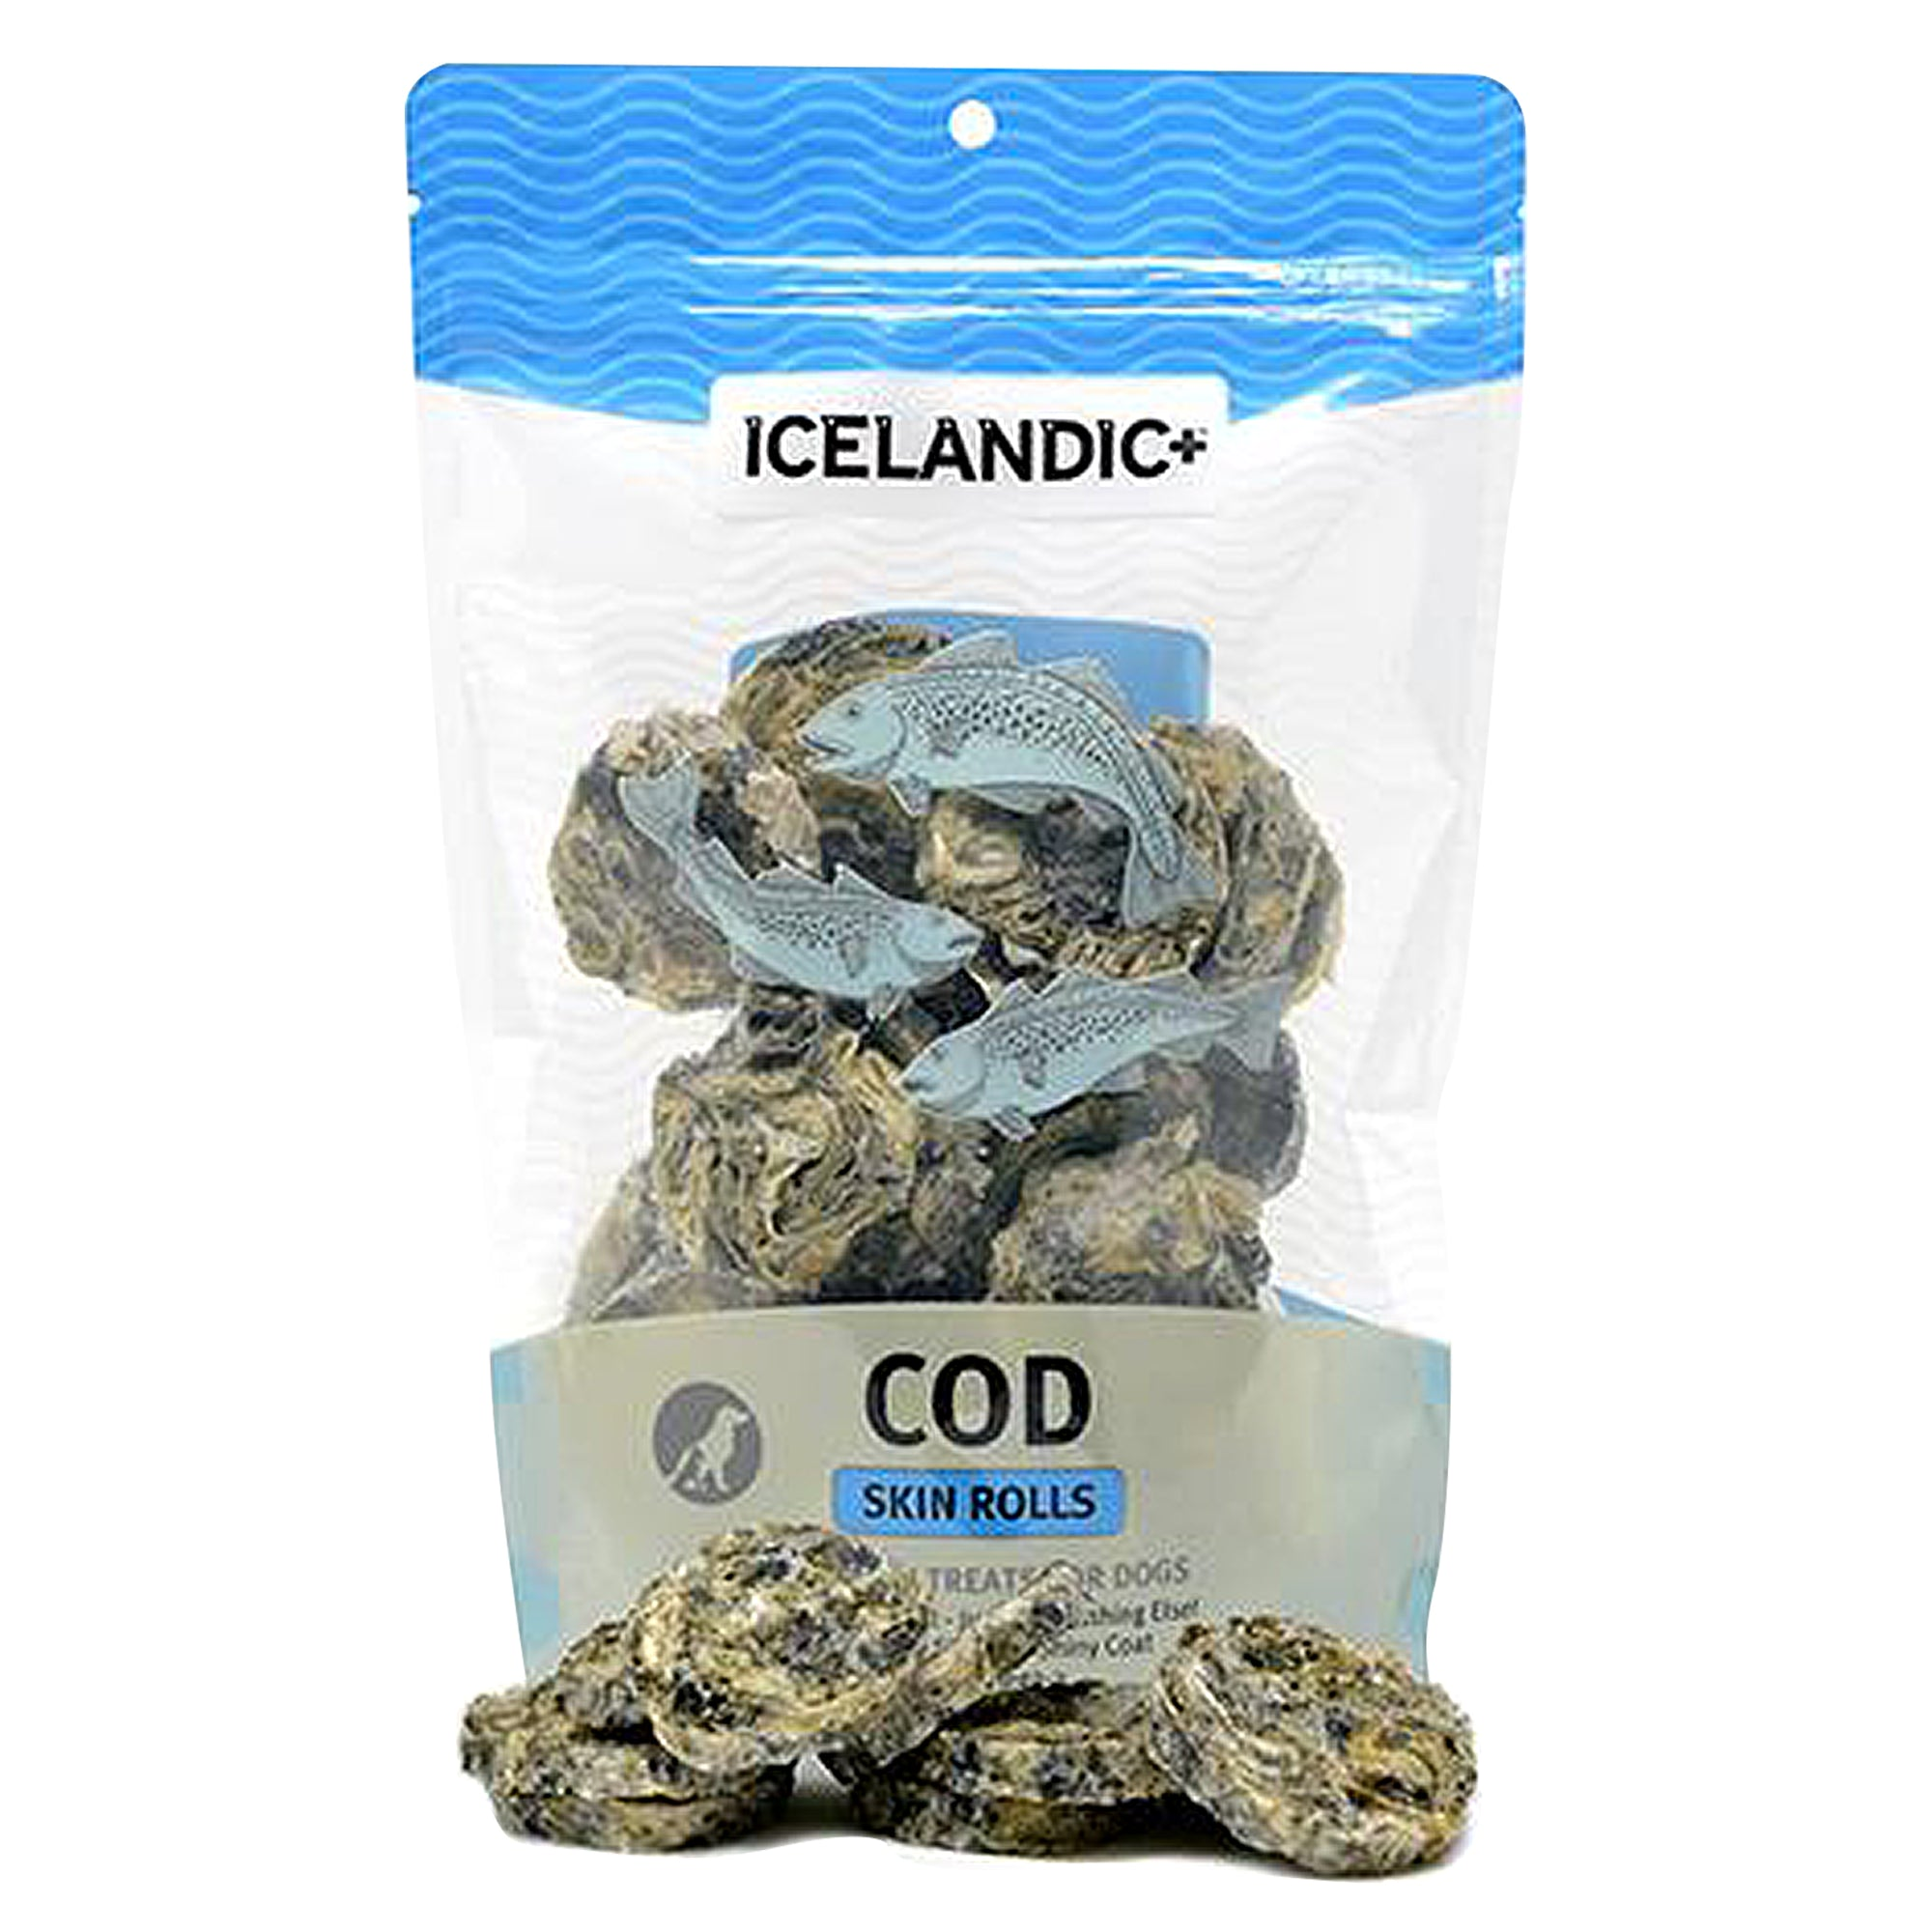 ICELANDIC+ All-Natural Cod Skin Rolls (30pcs) Front of Package